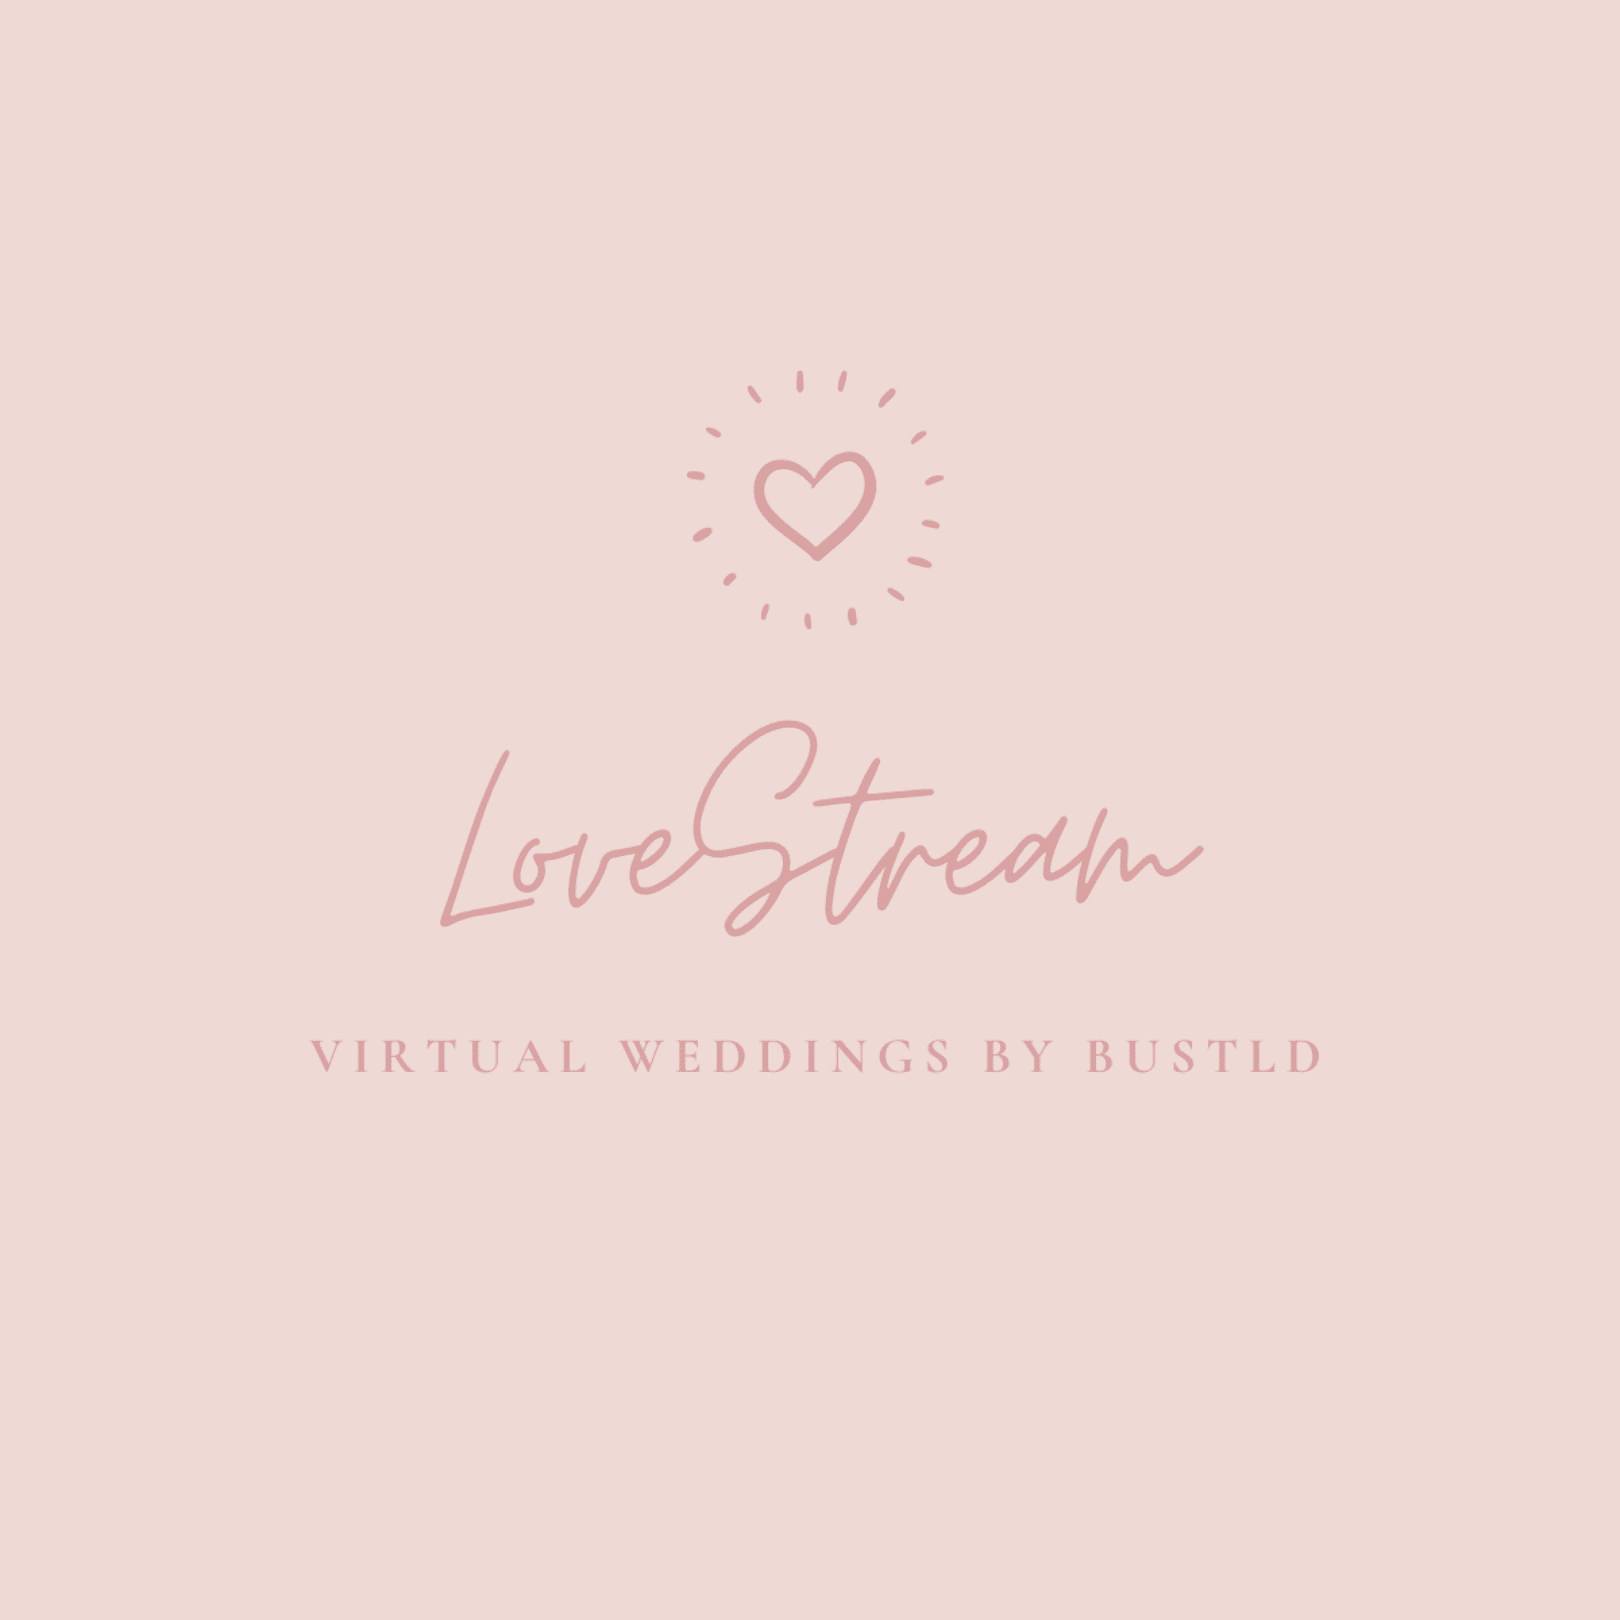 lovestream virtual weddings